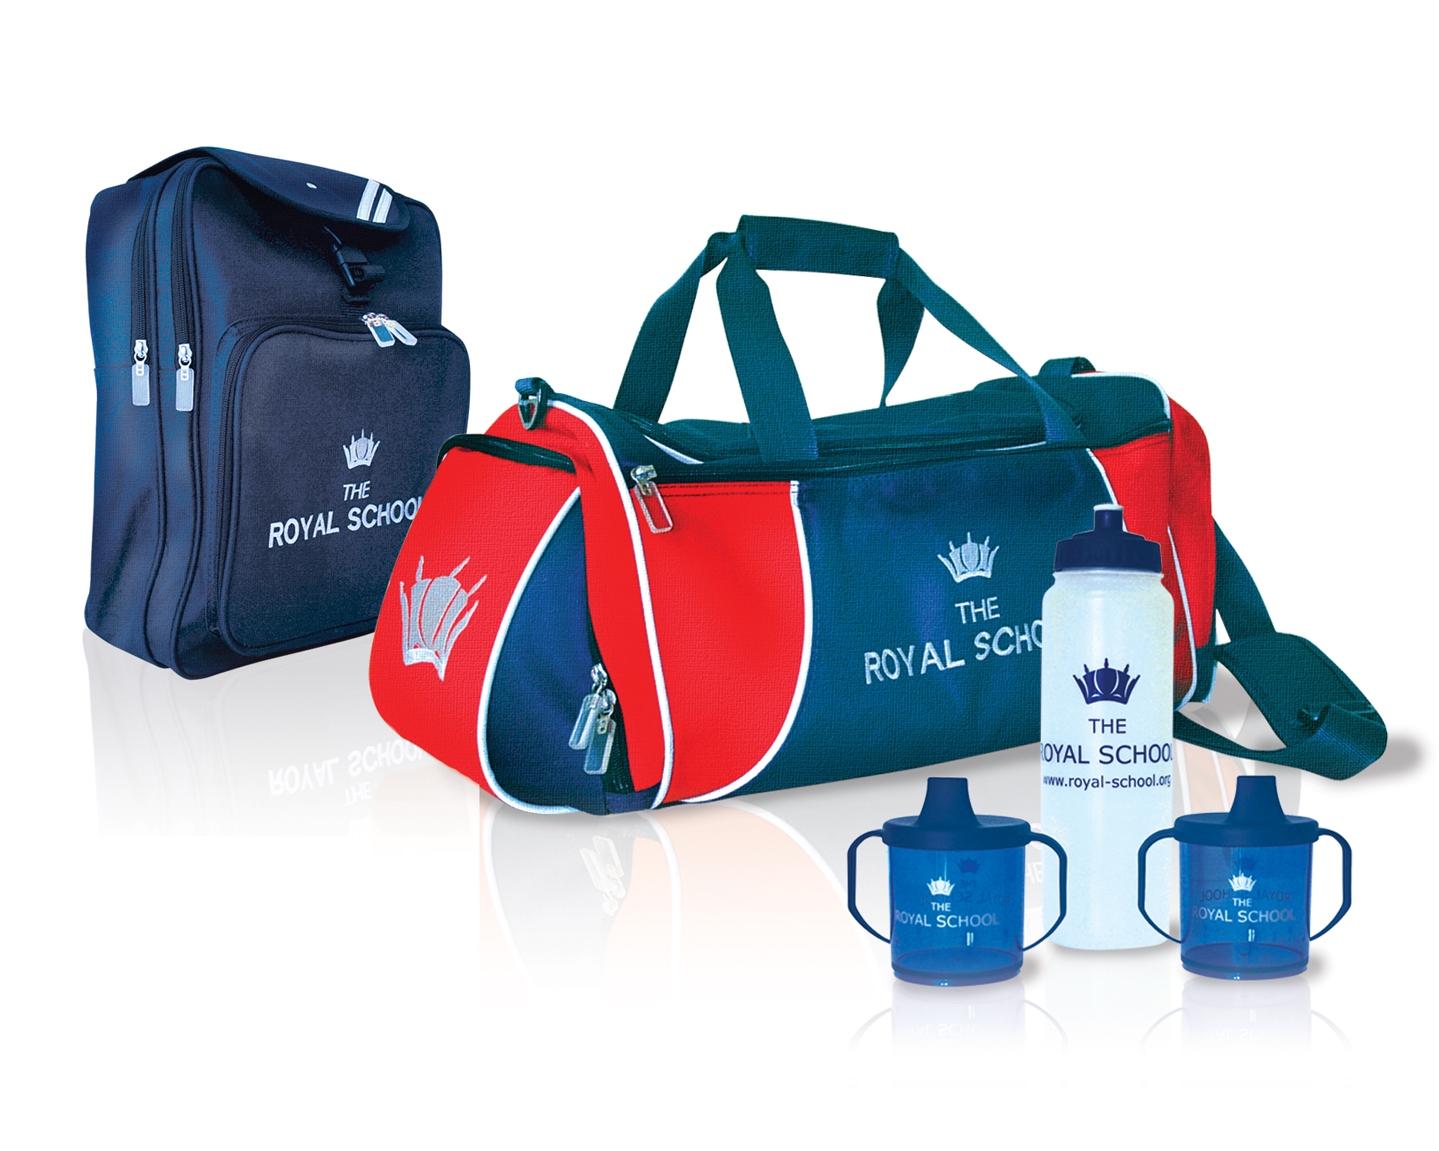 ROYS Sports Bags and Bottles